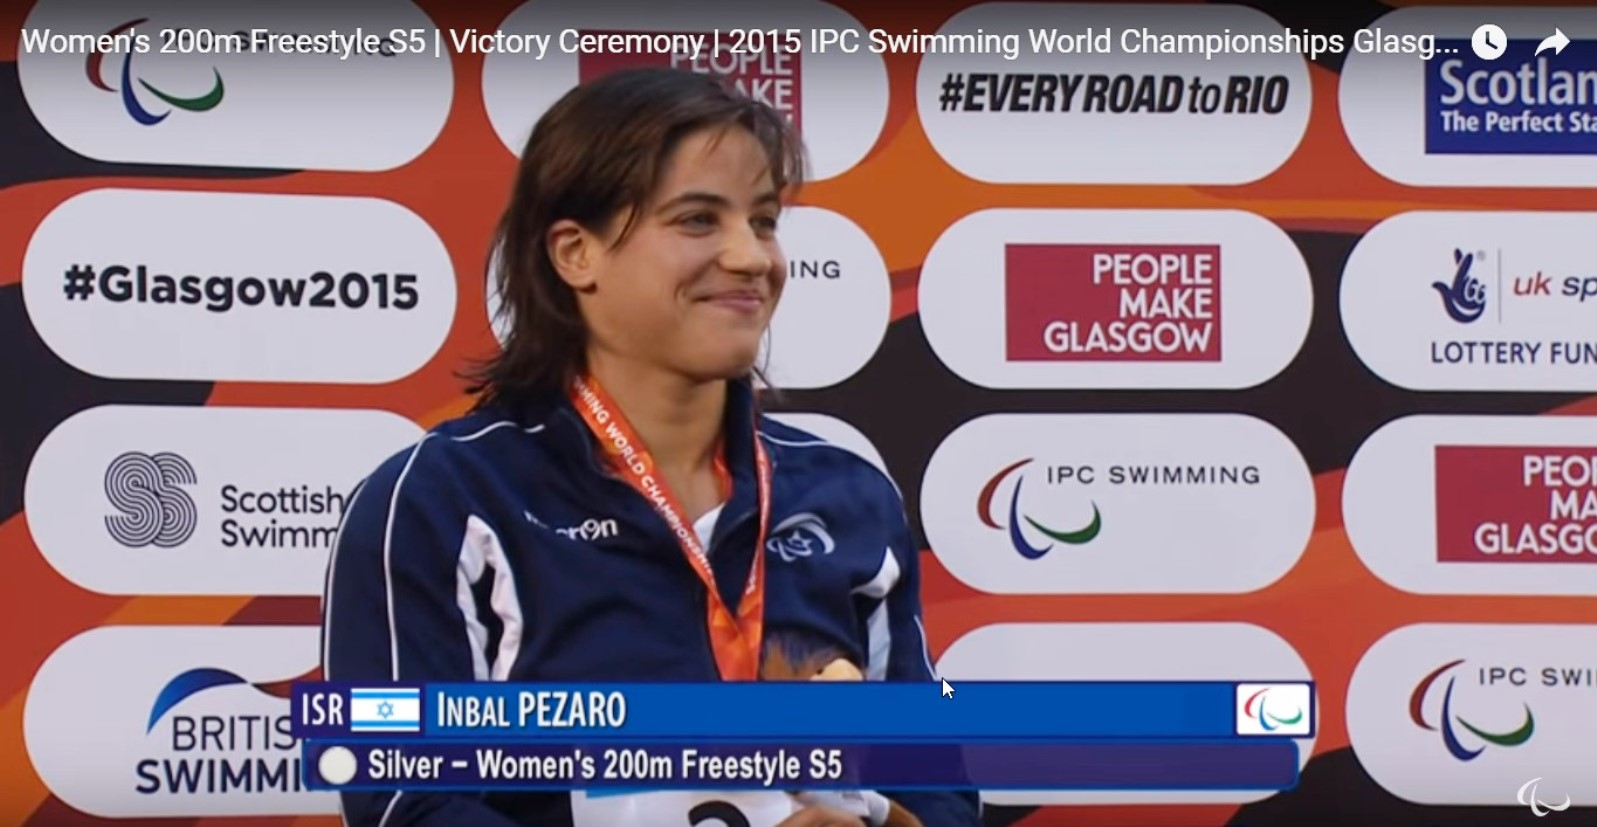 Inbal Pezaro on the podium at the 2015 World Swimming Championship in Glasgow. Photo: screenshot